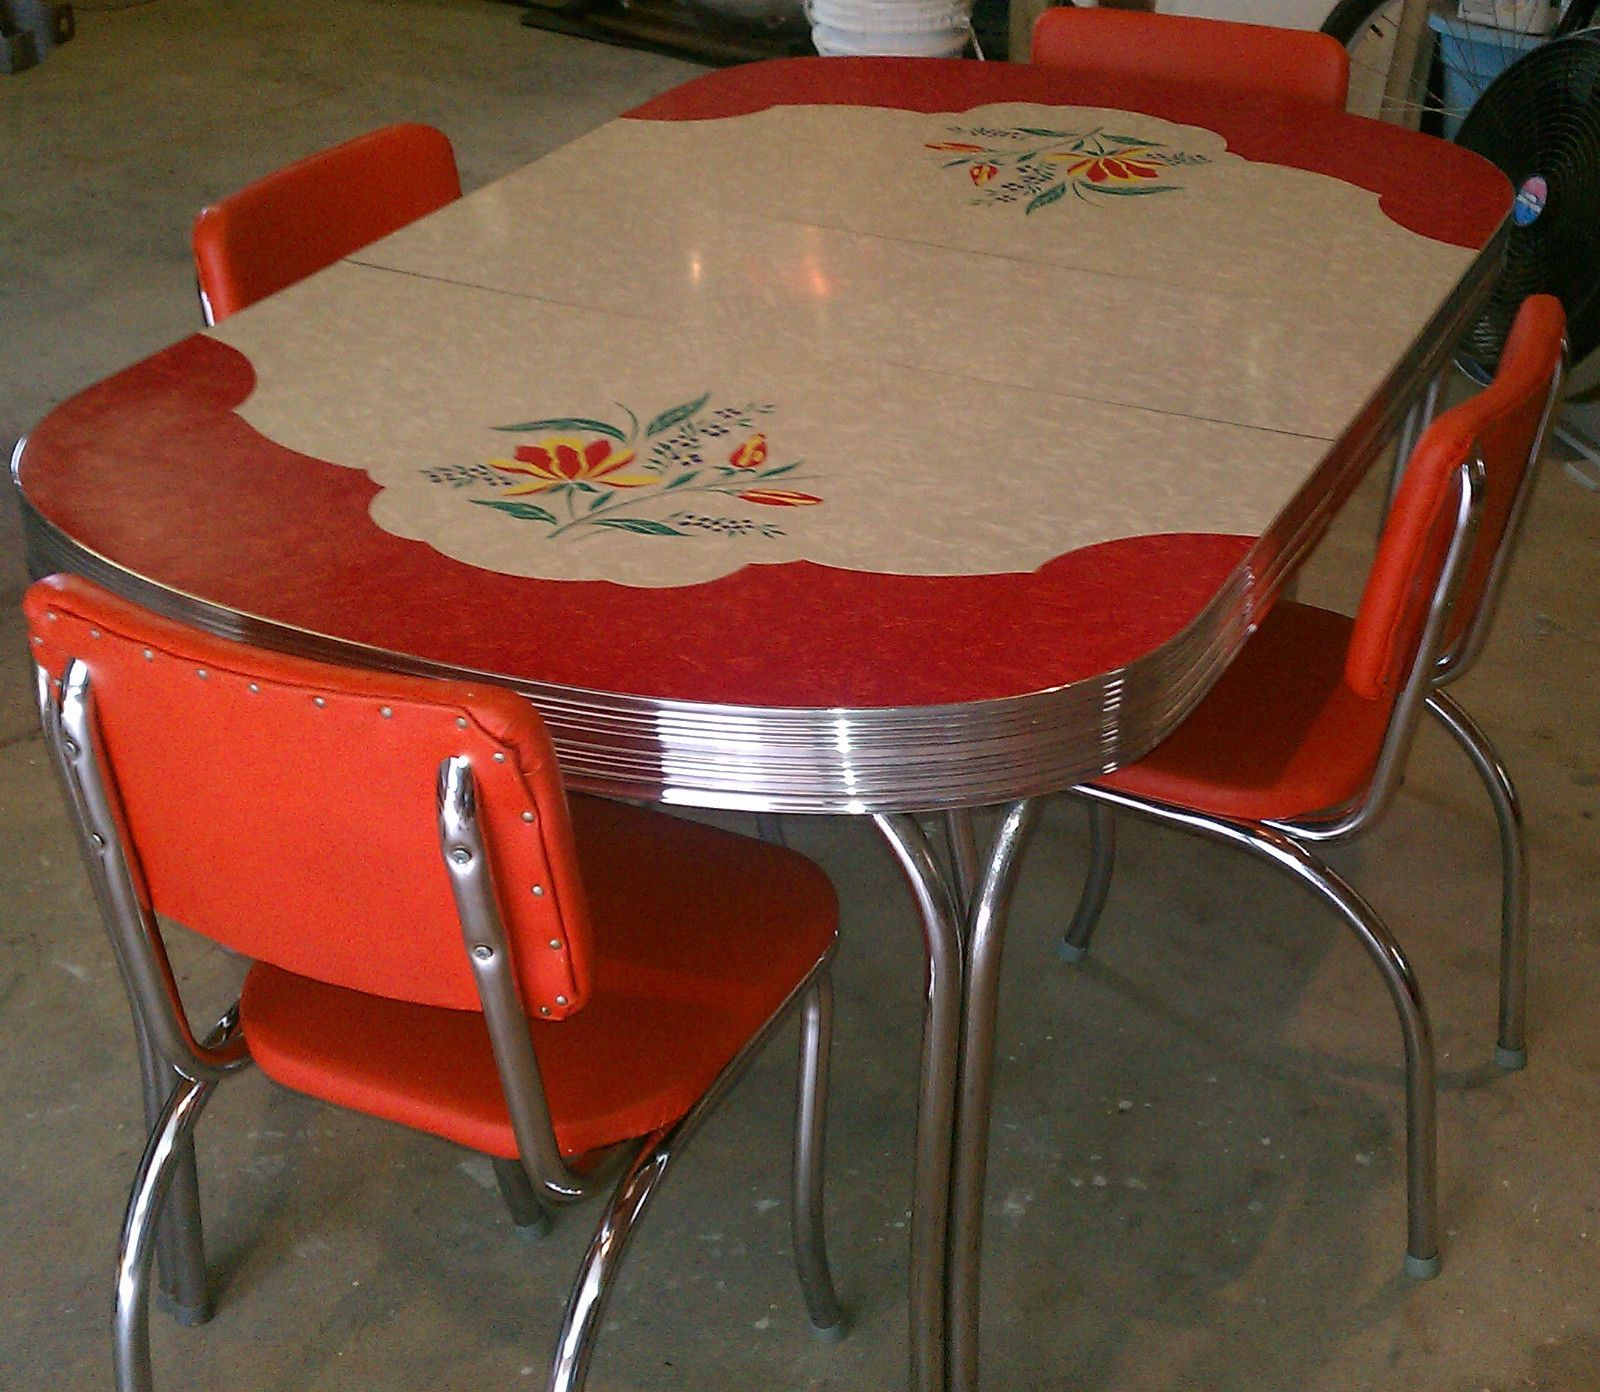 Medium image of love this table  vintage kitchen formica table 4 chairs chrome orange red white gray